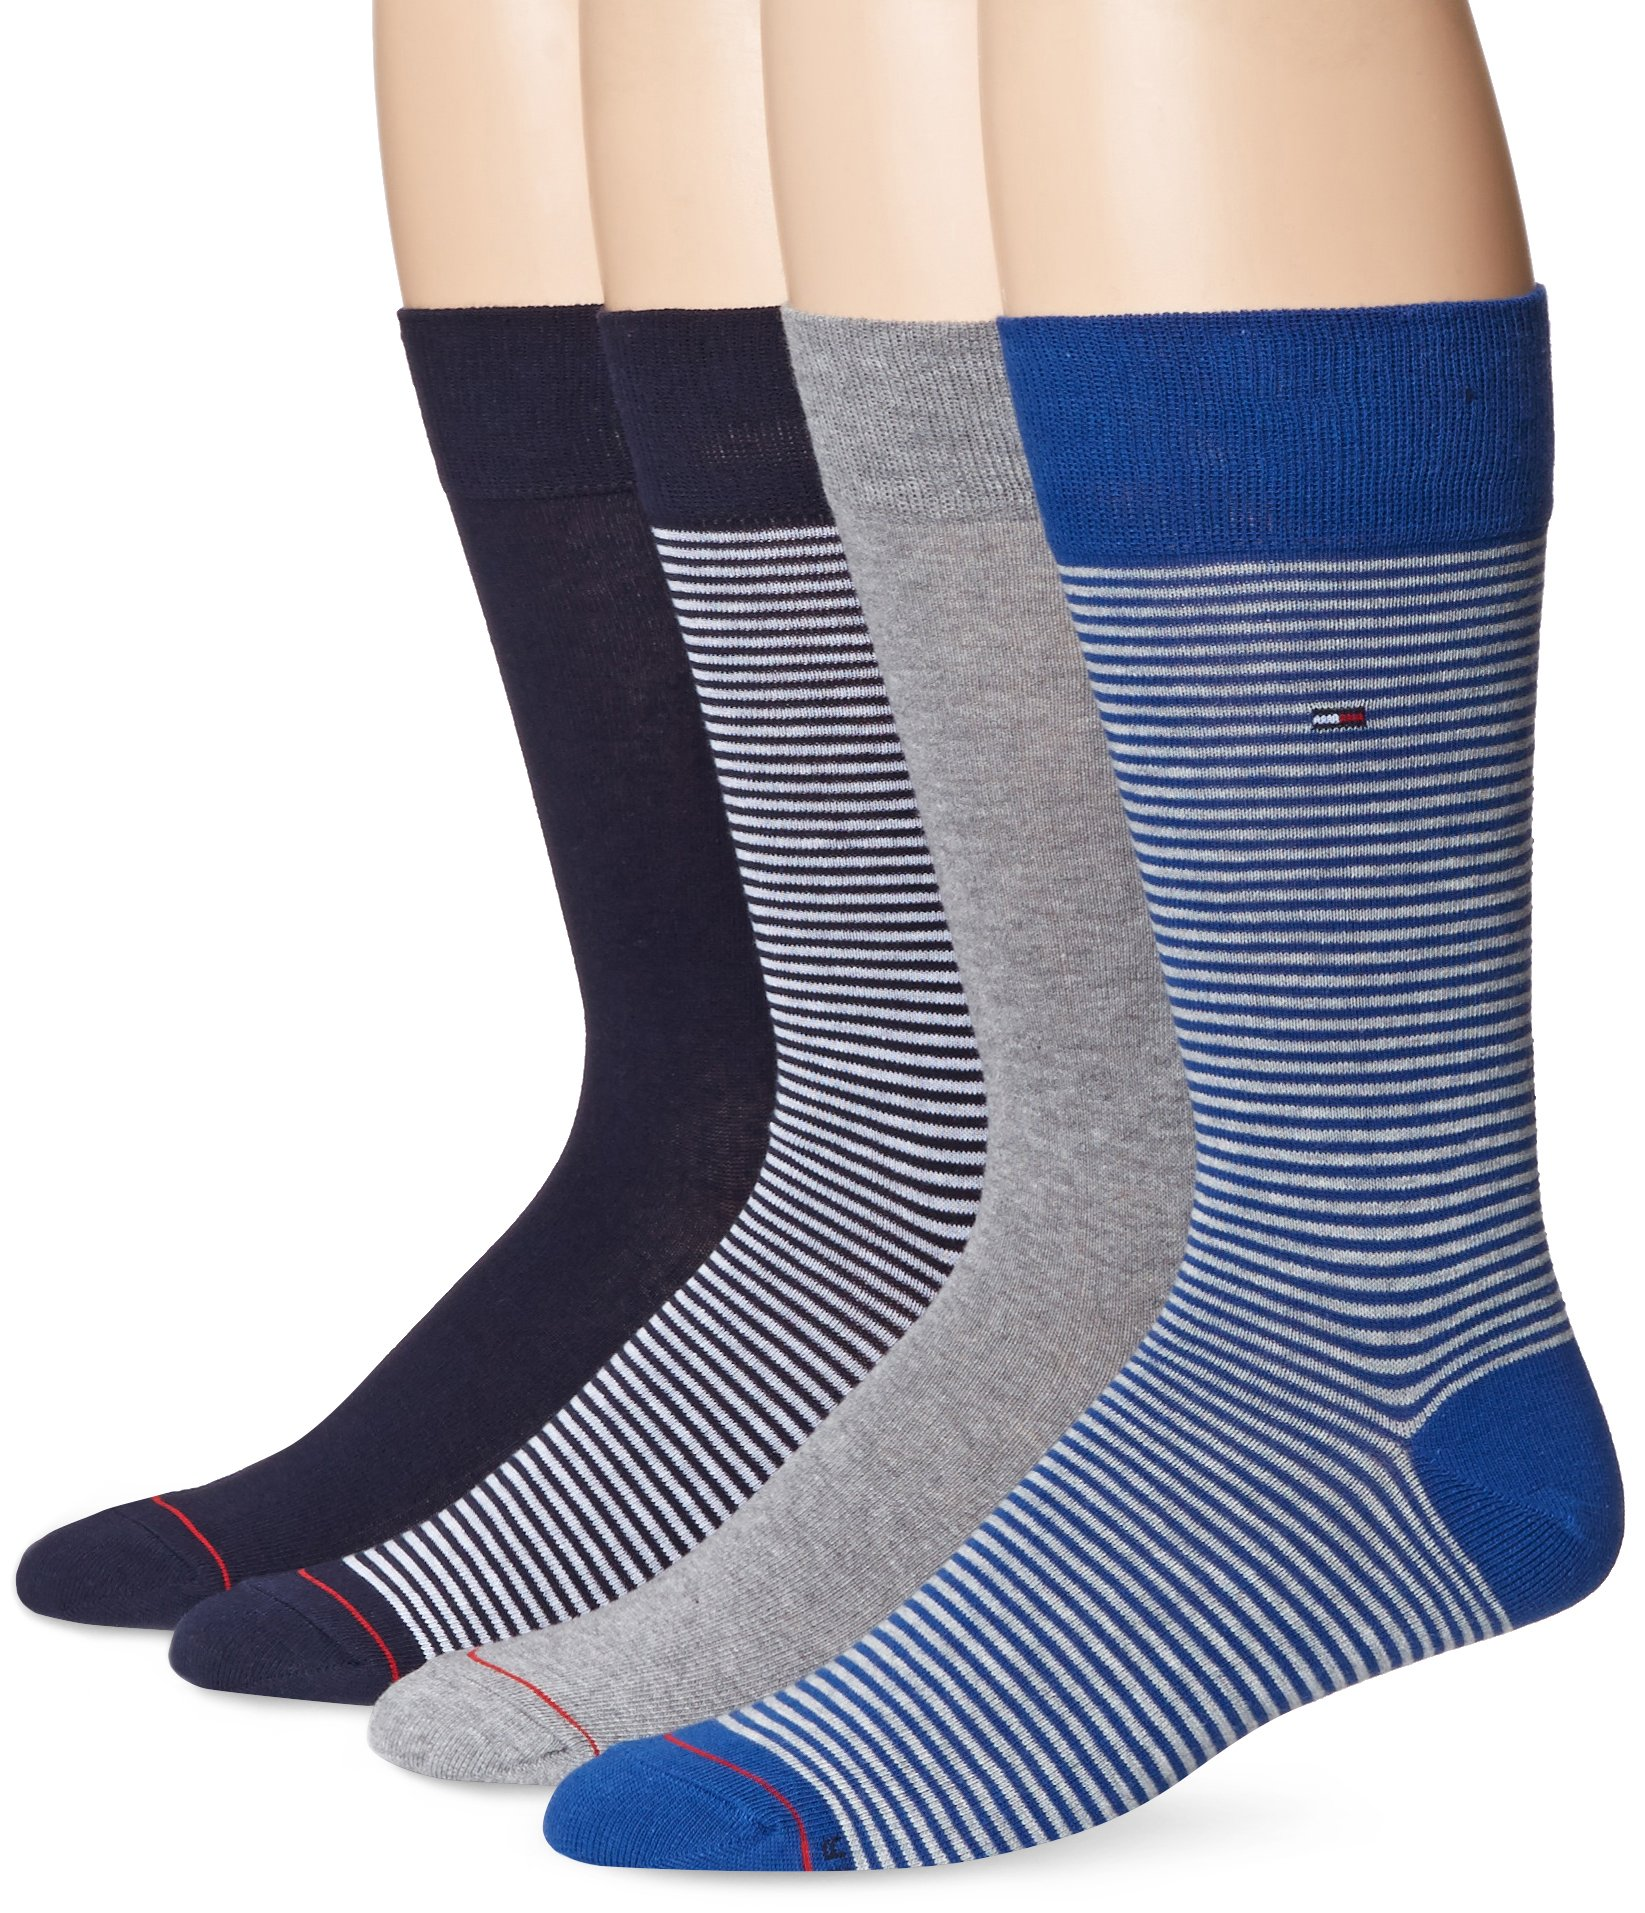 Tommy Hilfiger Men's 4 Pack Fine Bar Stripe Crew Sock,Black/Grey/Blue,Sock Size: 10-13/Shoe Size: 7-12